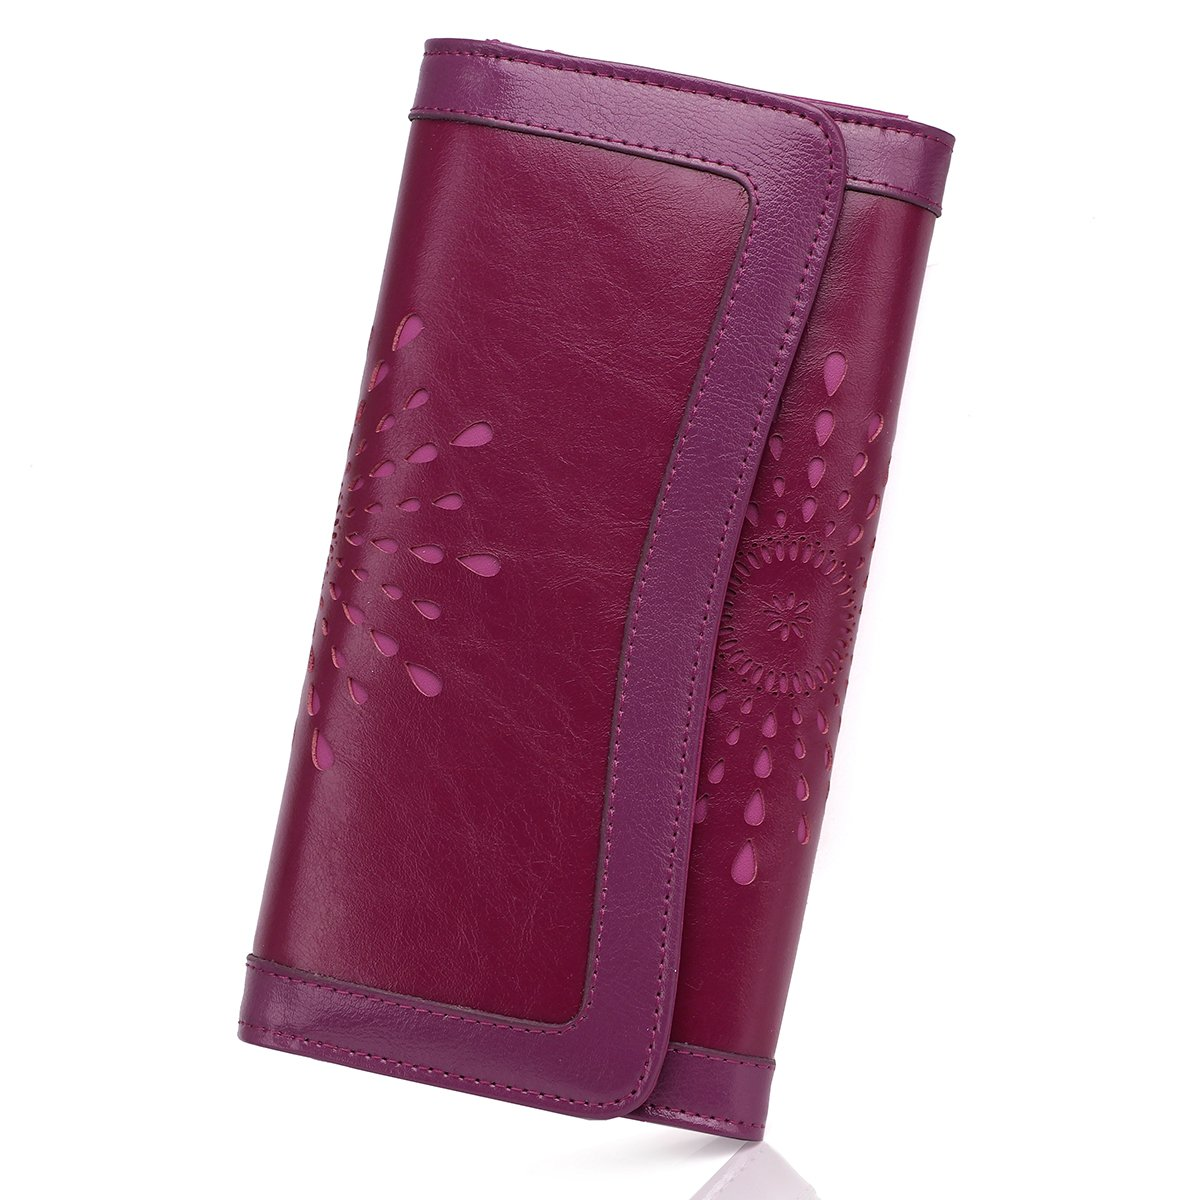 APHISONUK Women's Soft Leather Wallet RFID Blocking Credit Card Holder Long Wallets With Gift Box (Purple)